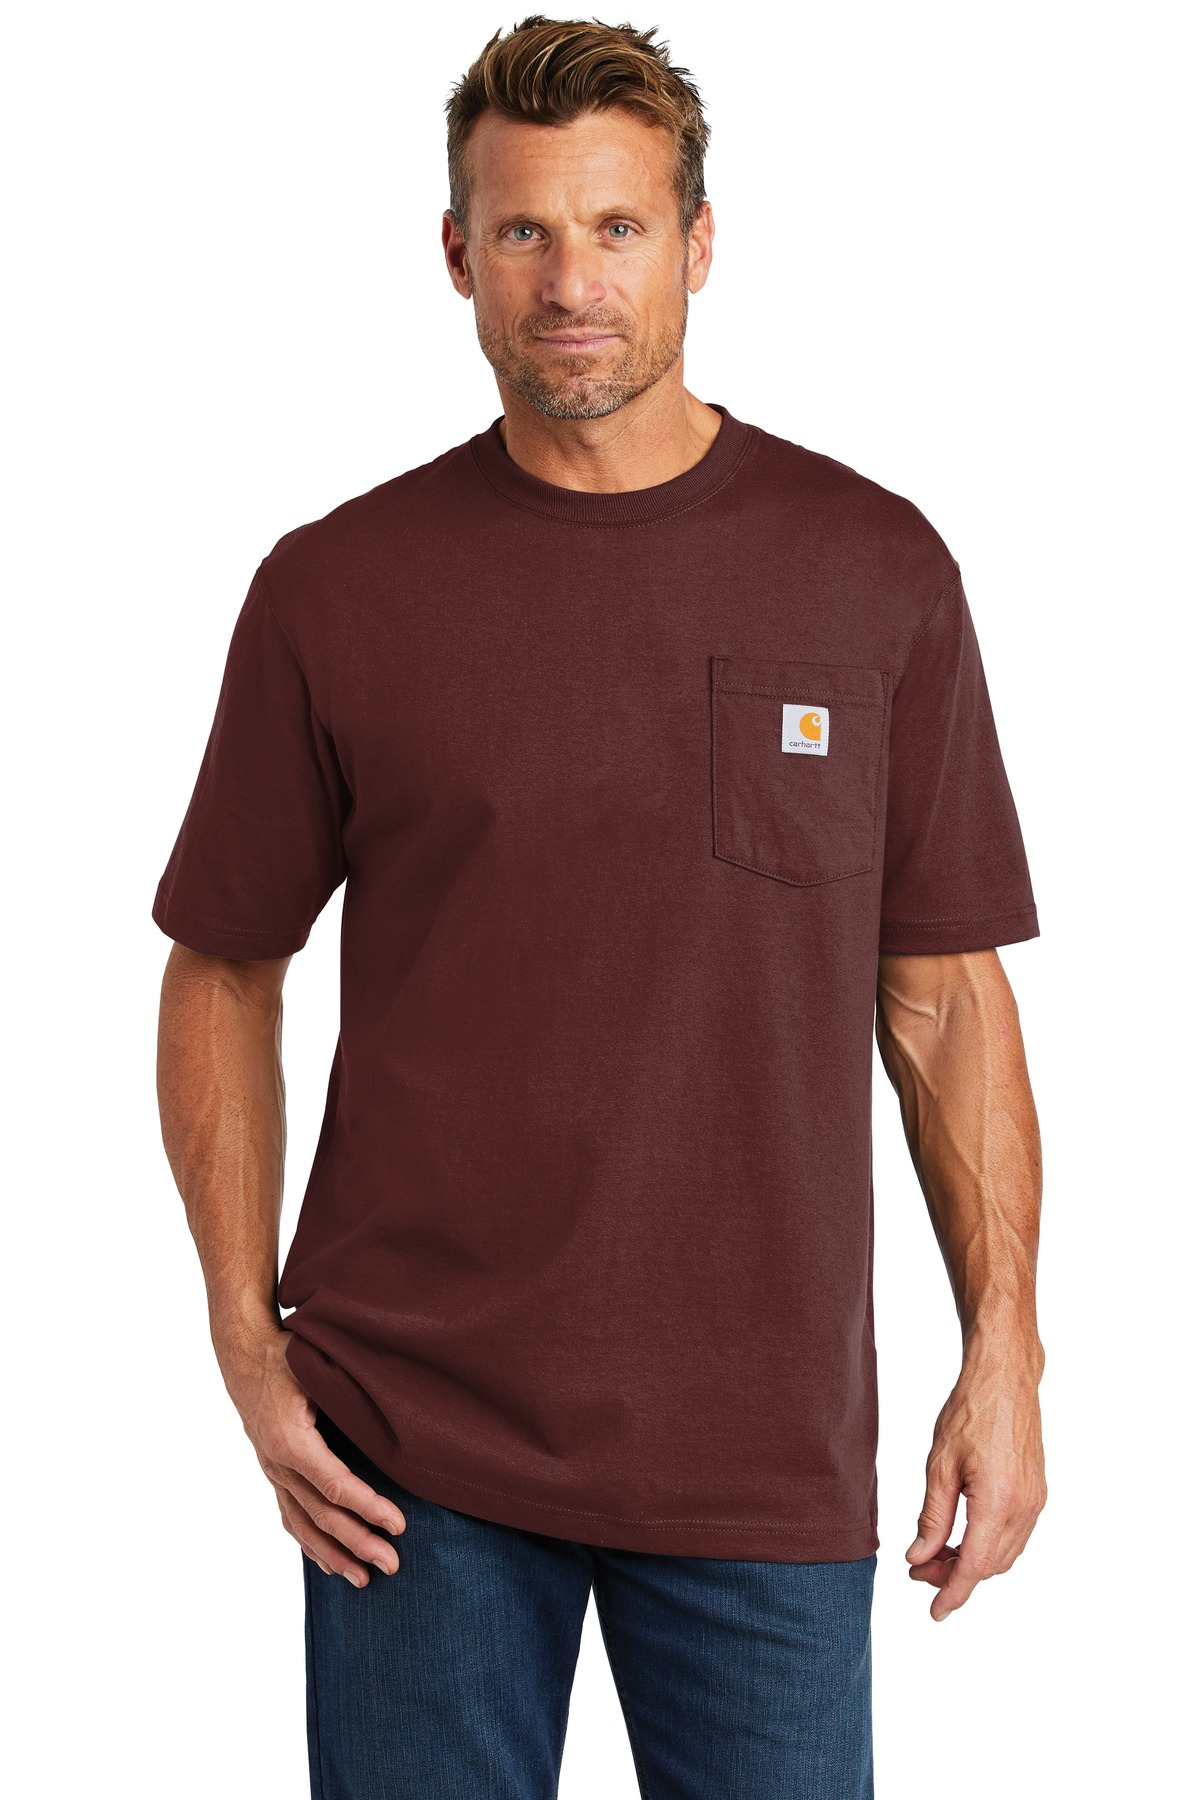 Carhartt  ®  Workwear Pocket Short Sleeve T-Shirt. CTK87 - Port